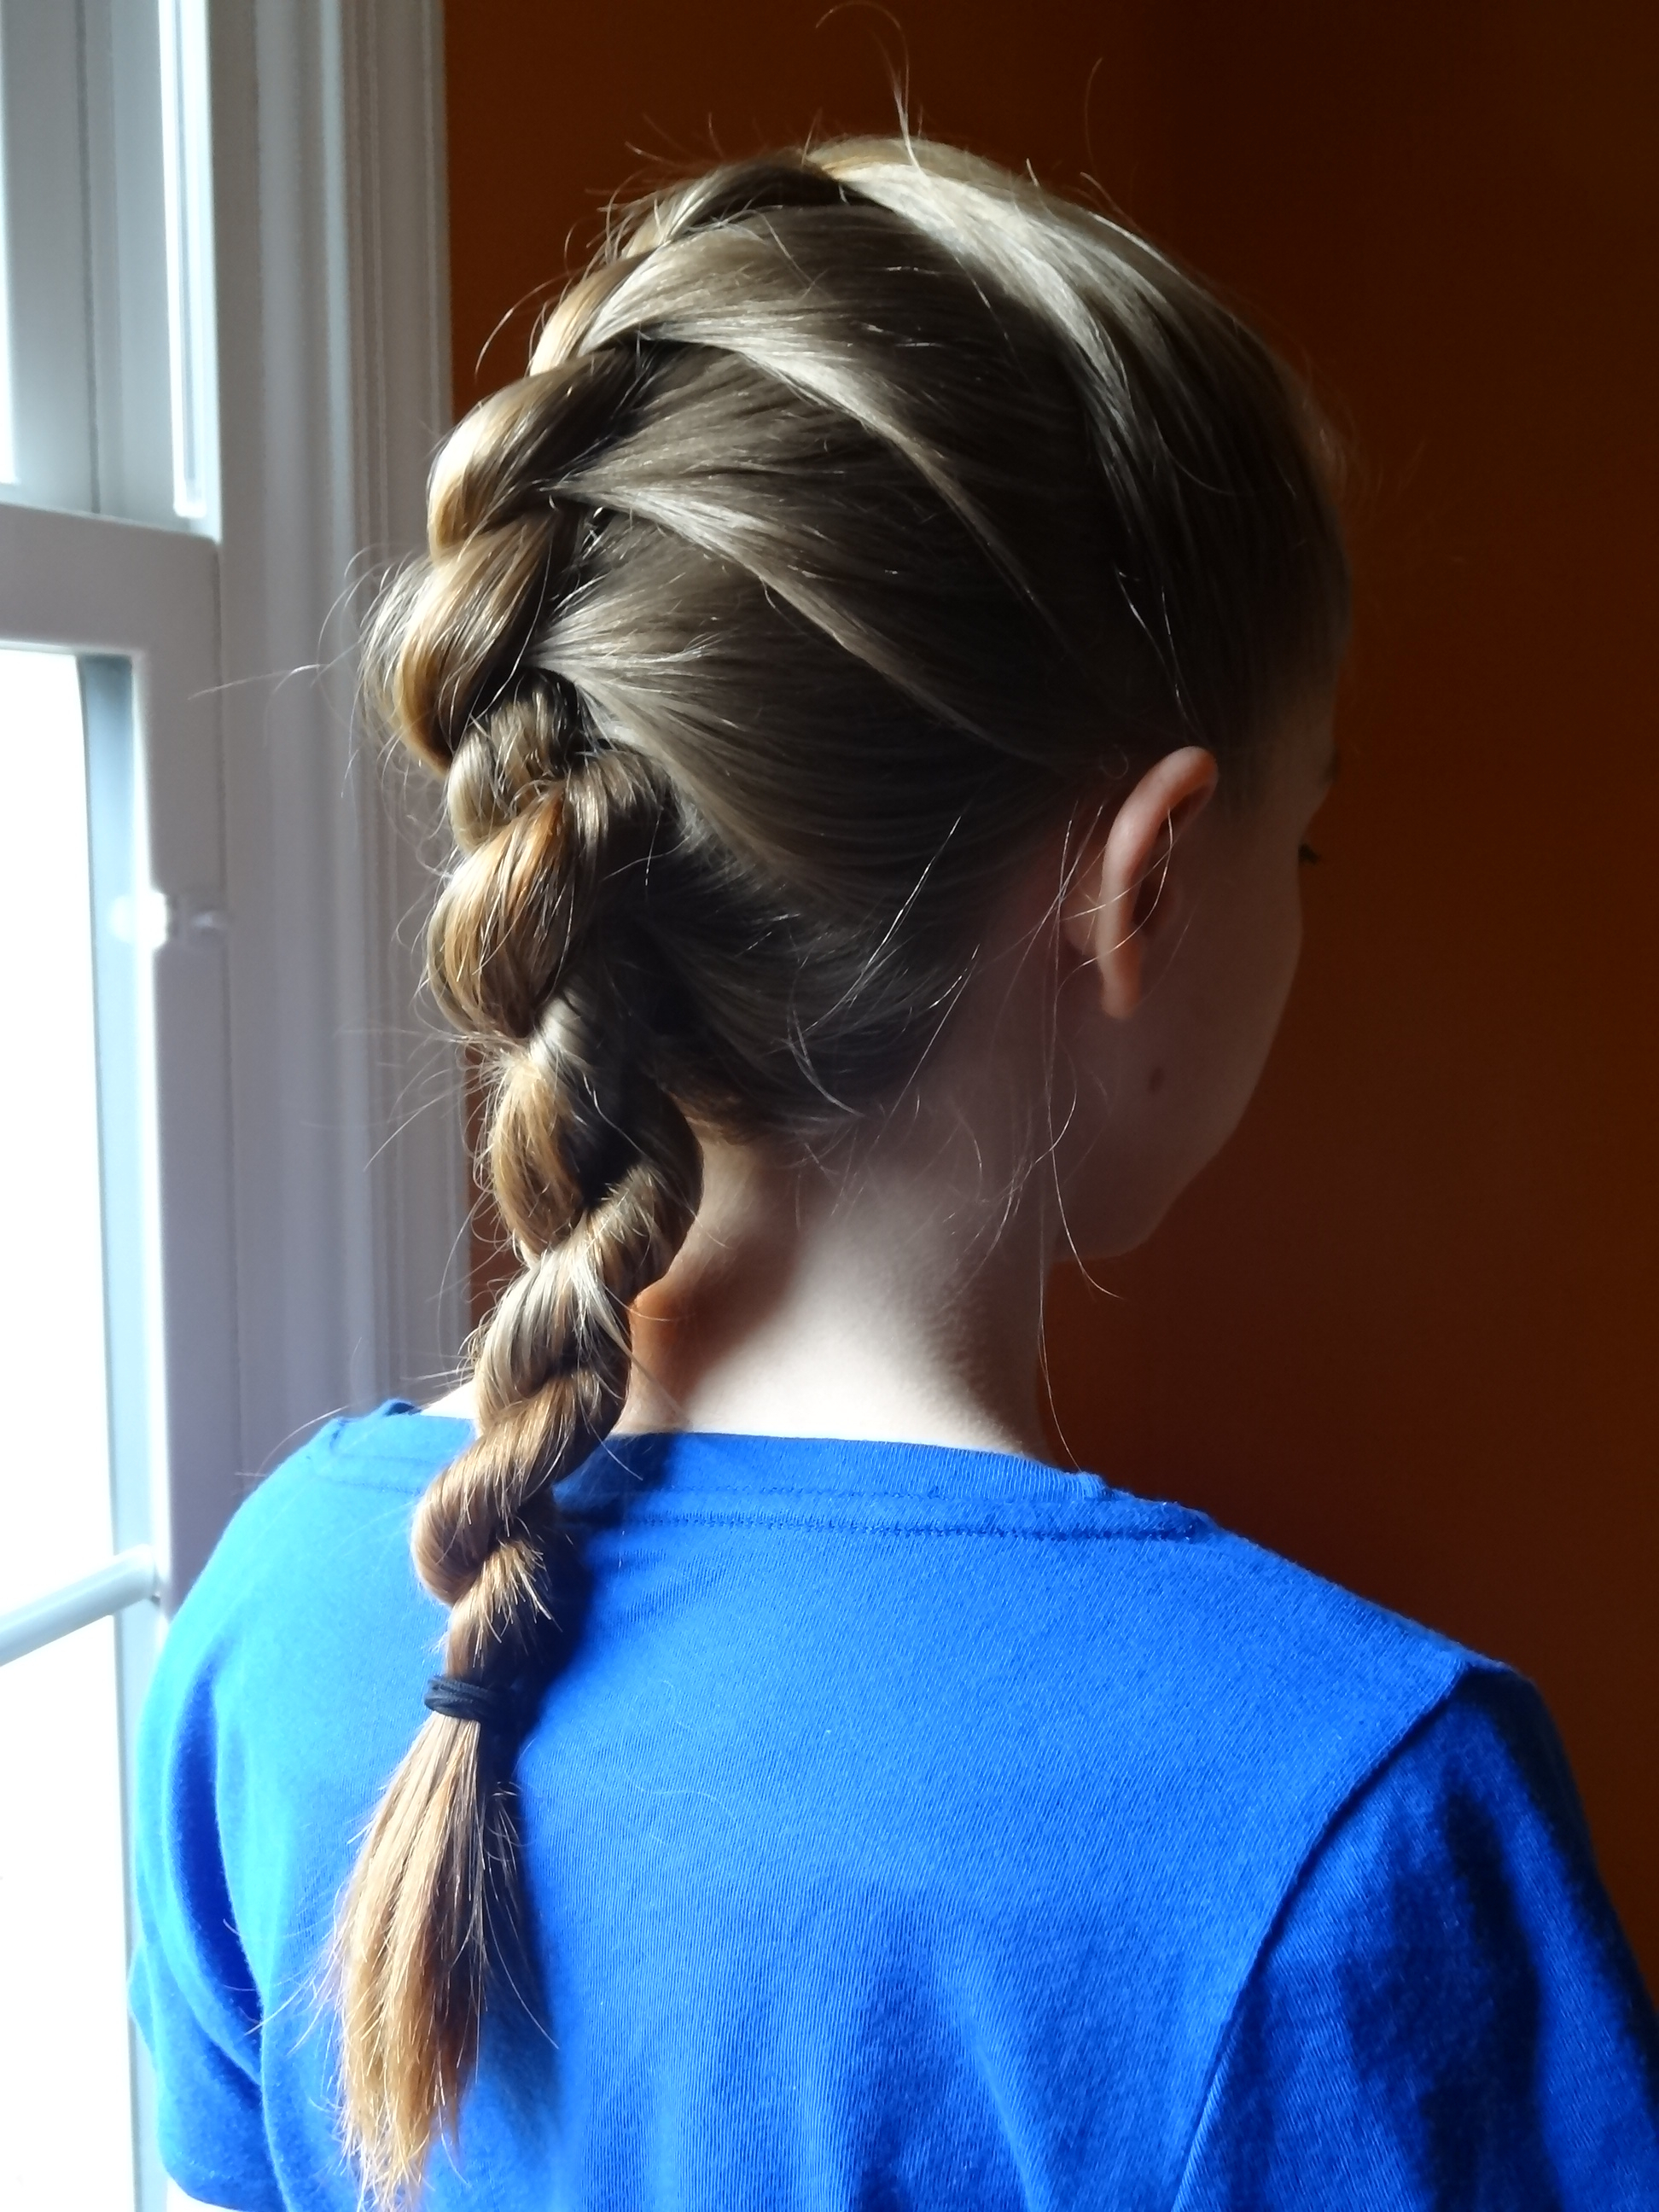 45 Easy Braid Hairstyles With How To Do Them – Haircuts With Current Easy French Rope Braid Hairstyles (View 6 of 20)